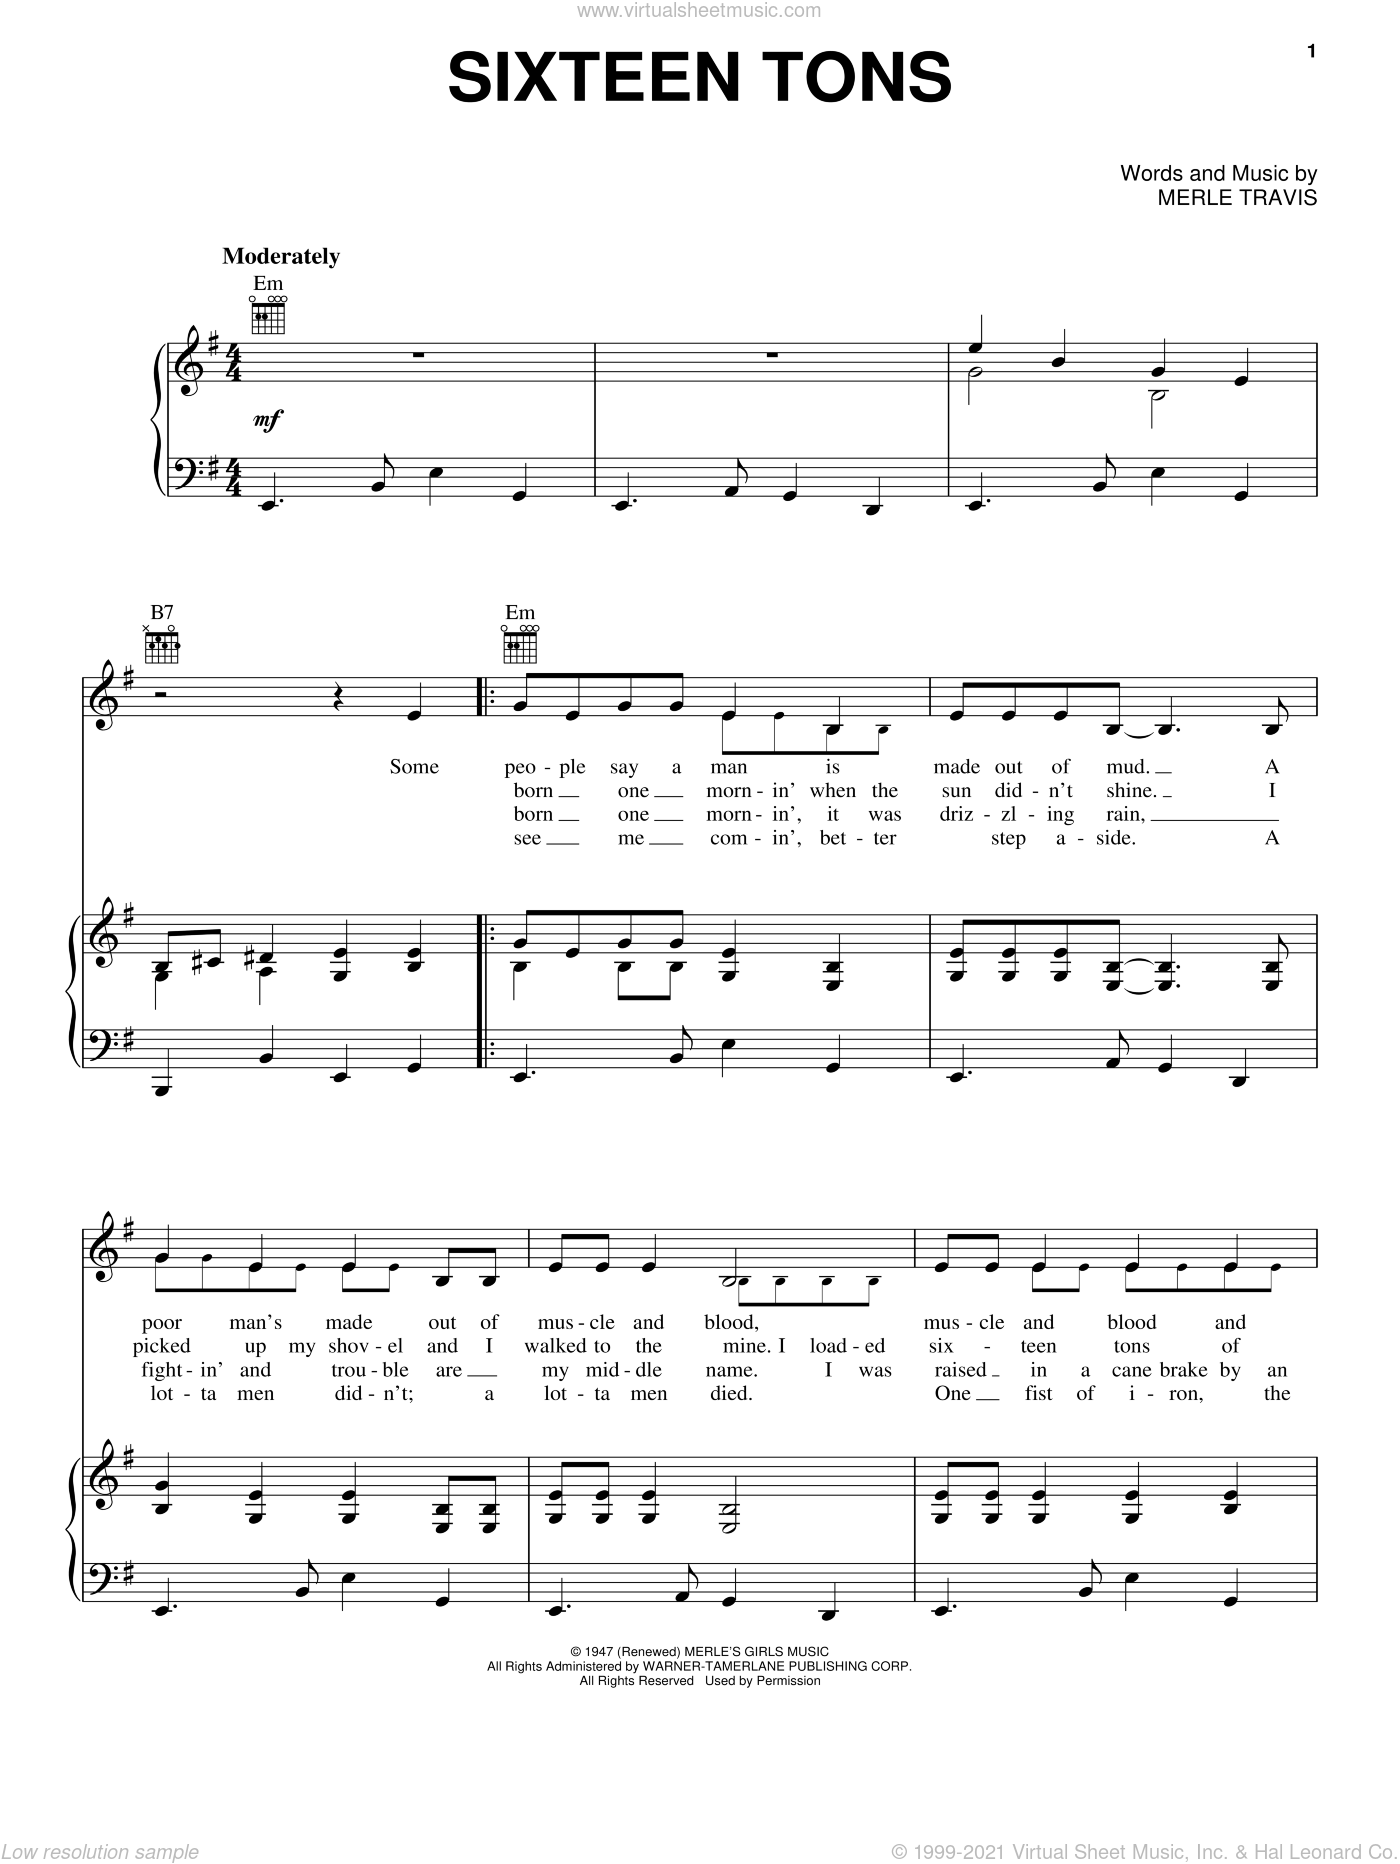 Sixteen Tons sheet music for voice, piano or guitar by Merle Travis and Tennessee Ernie Ford, intermediate skill level